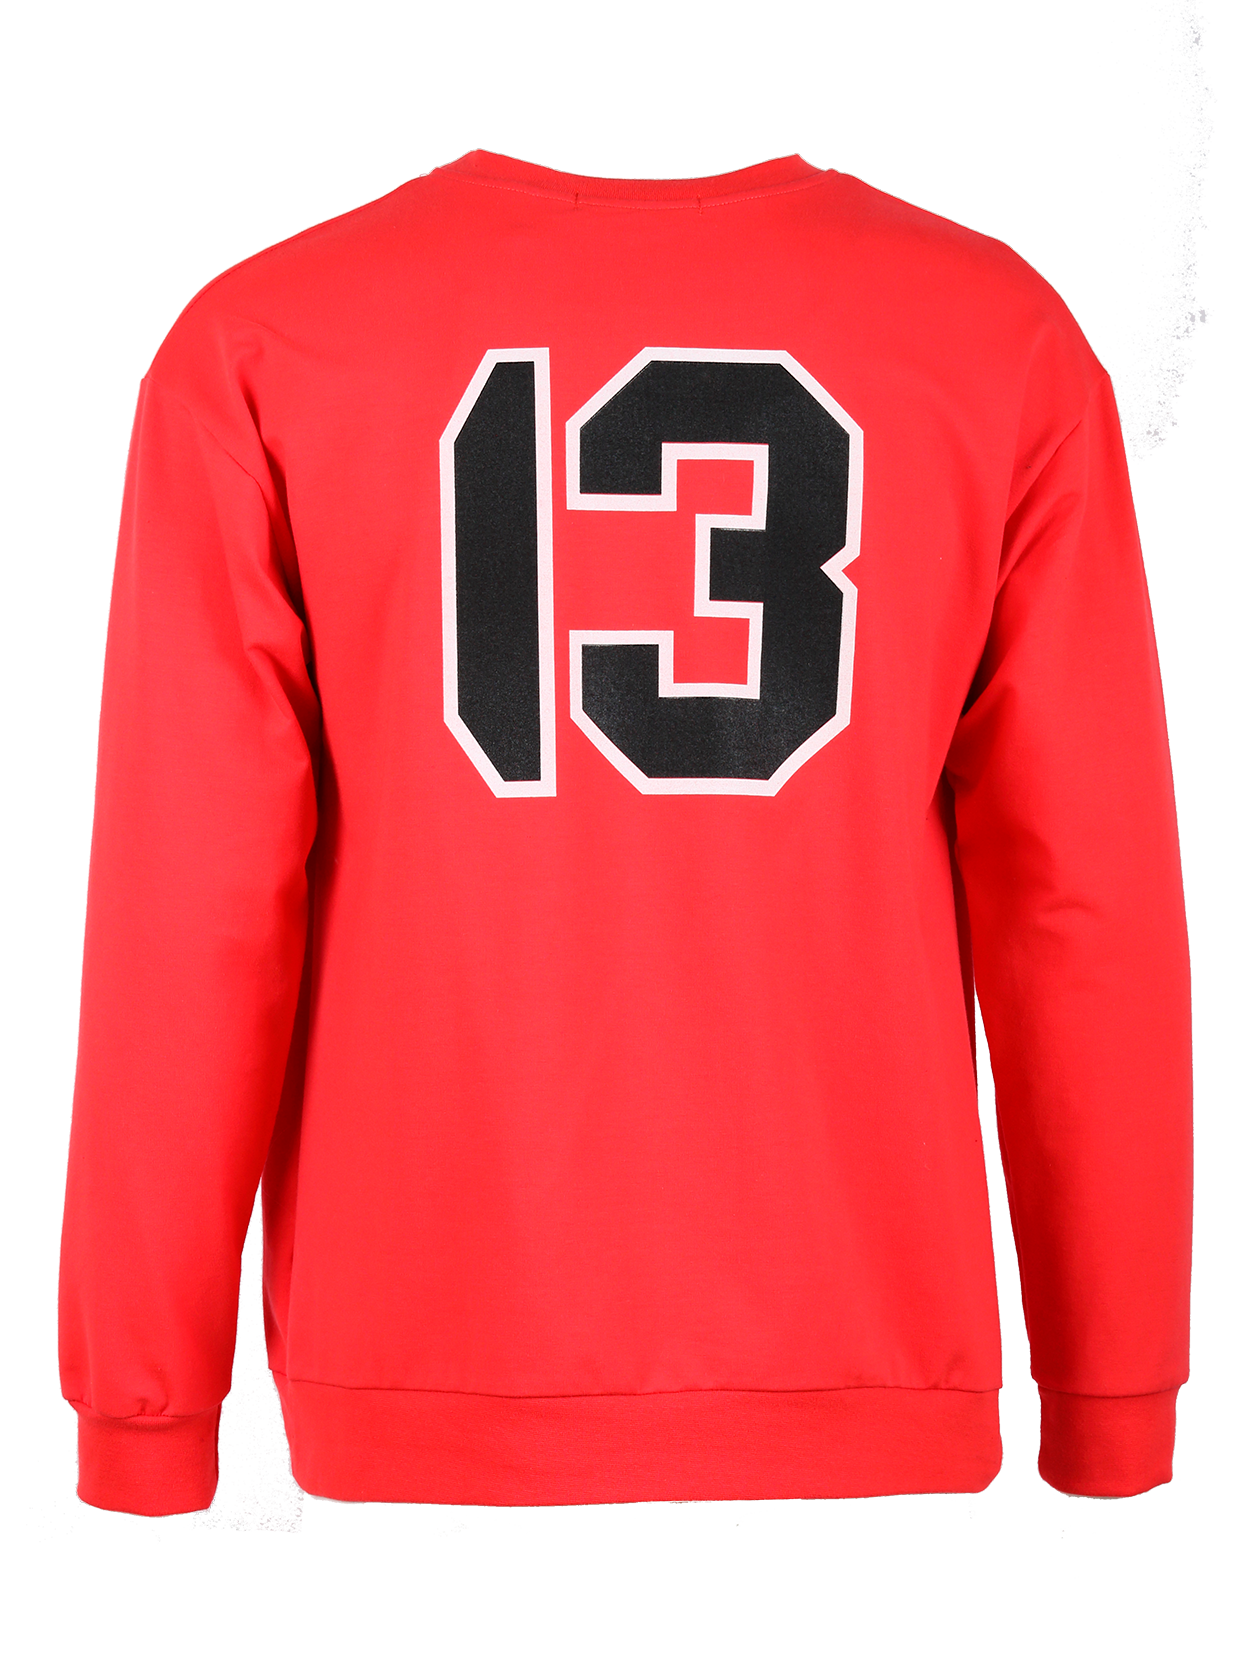 Unisex hoodie Tattoo 13<br><br>size: M<br>color: Red<br>gender: male